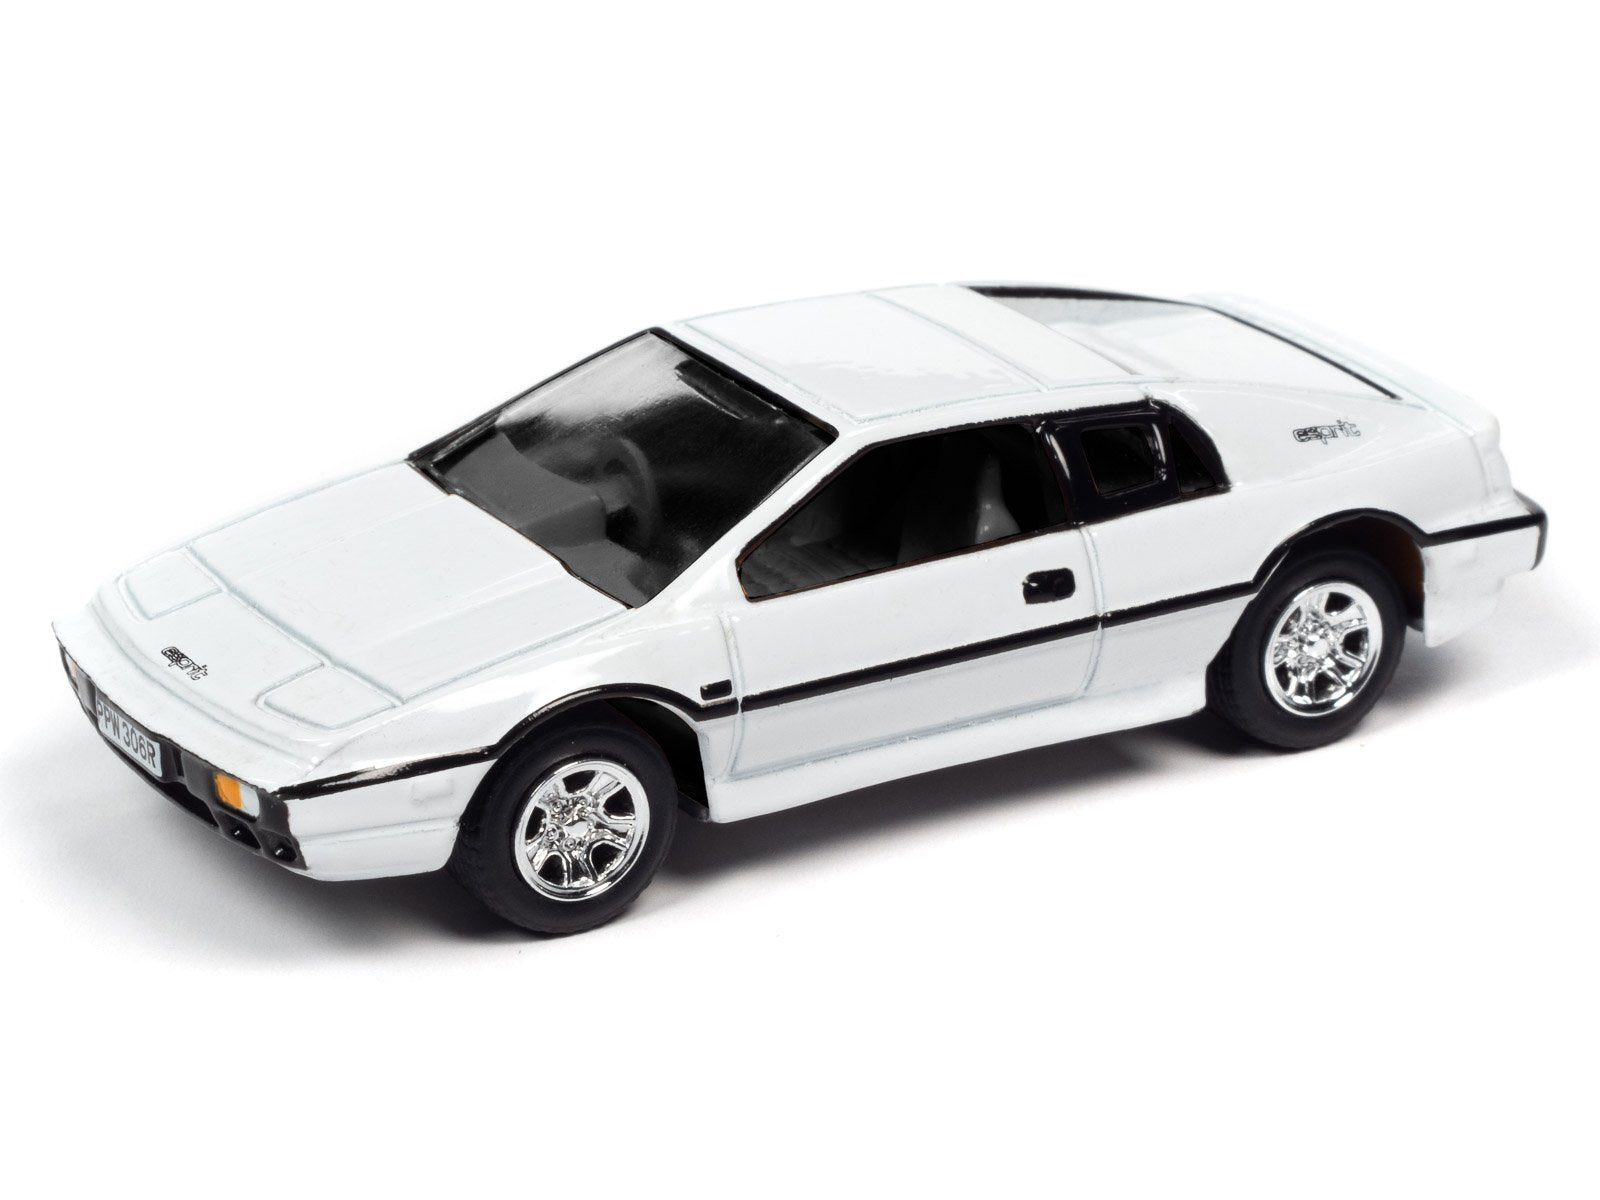 James Bond Lotus Esprit - The Spy Who Loved Me Edition - By Johnny Lightning